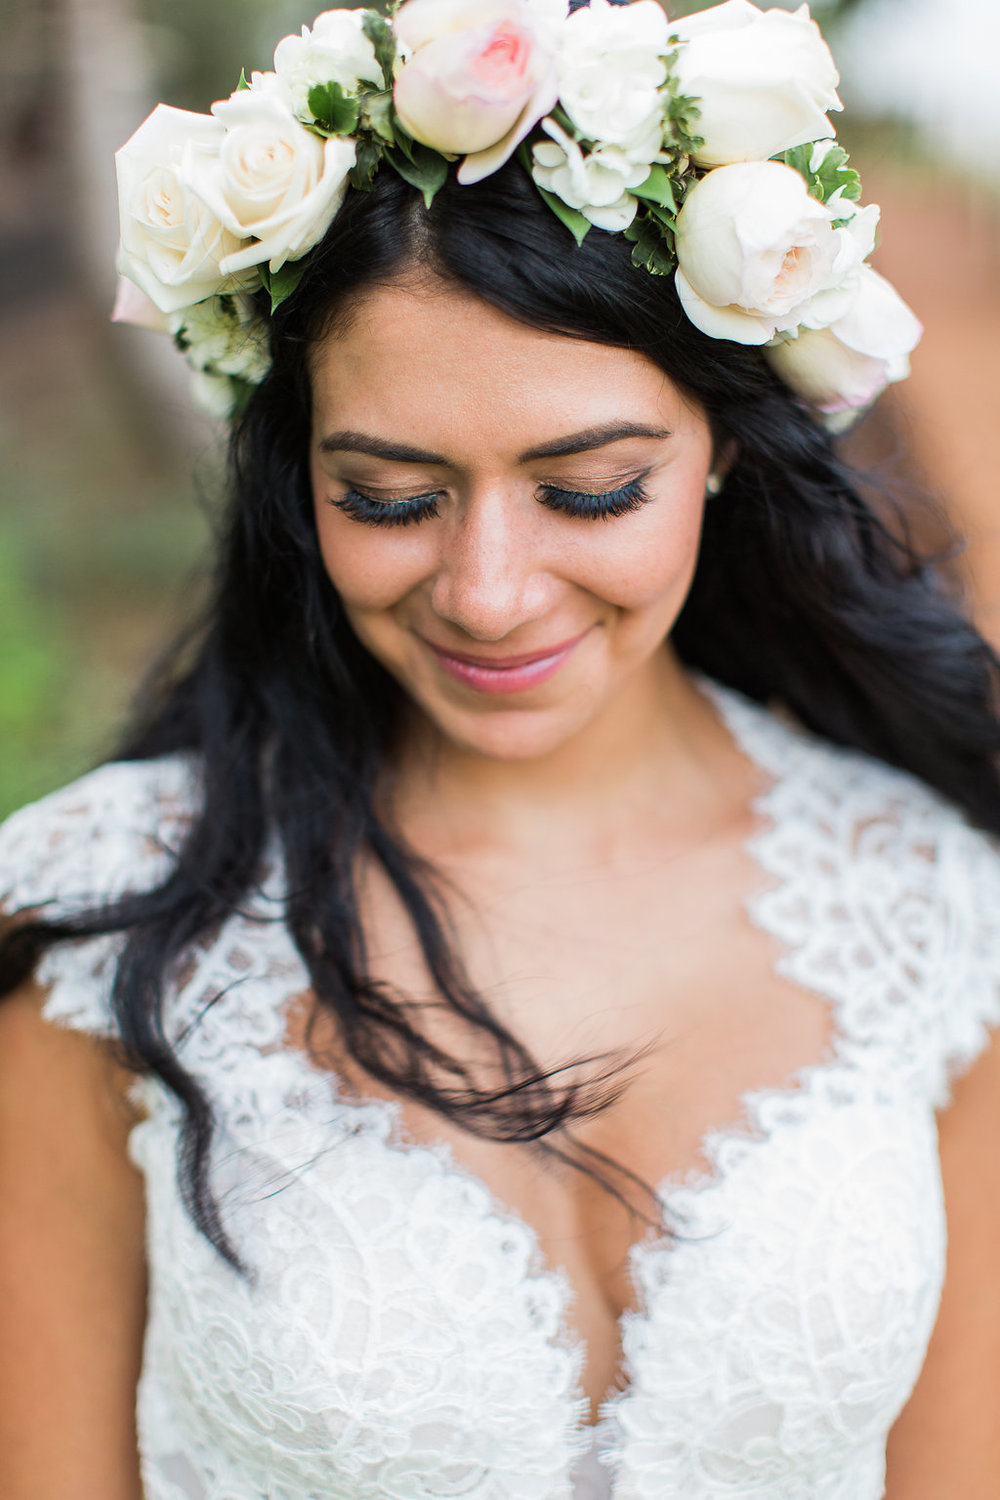 A Stunning Boho Bride Adorned with a Flower Crown